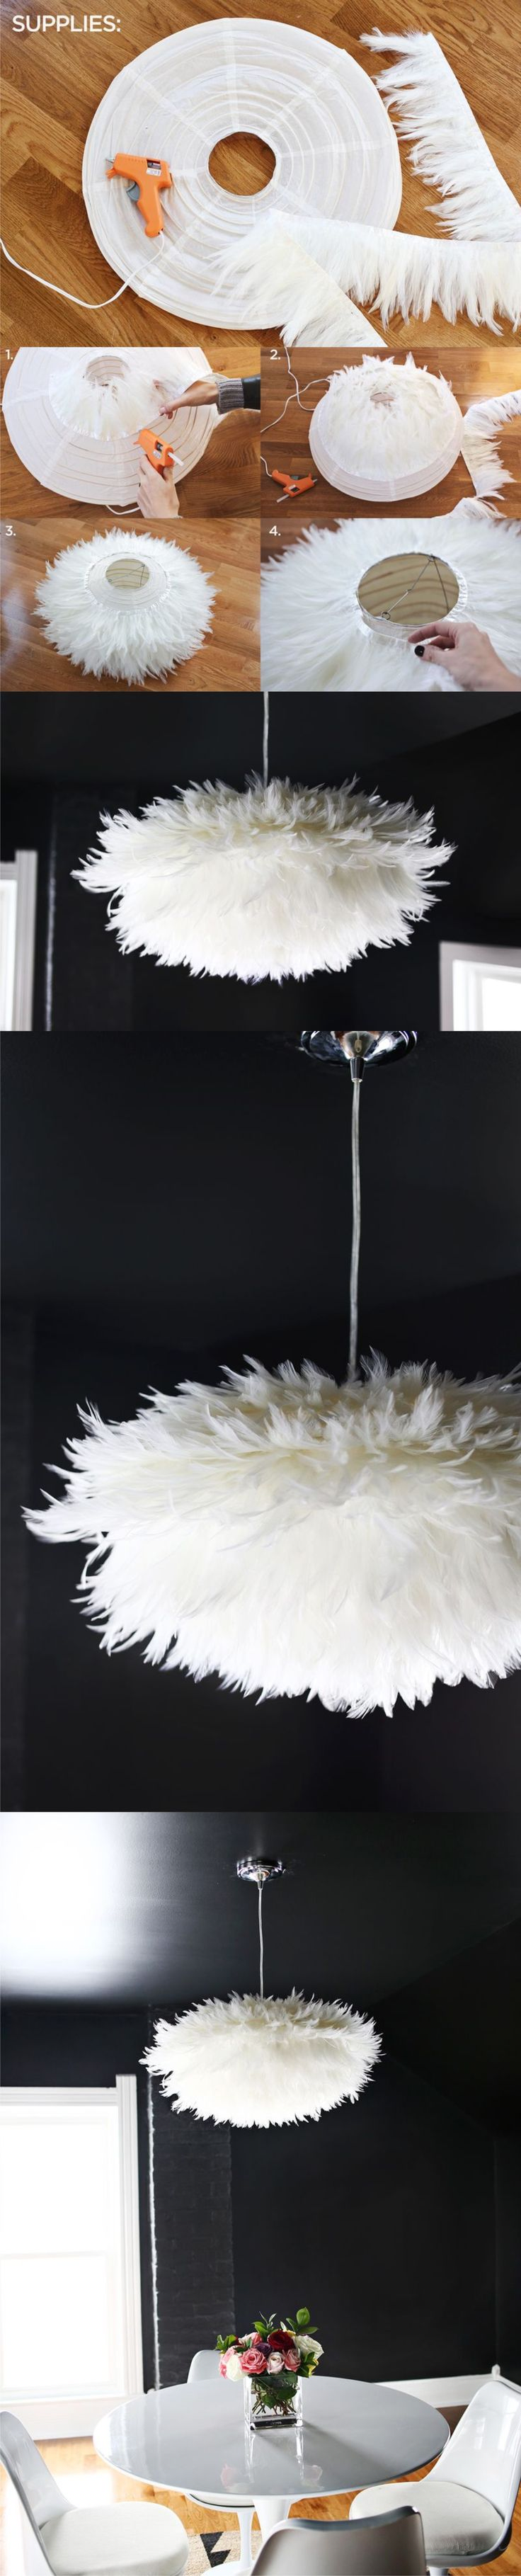 DIY Chic White Feather Chandelier.